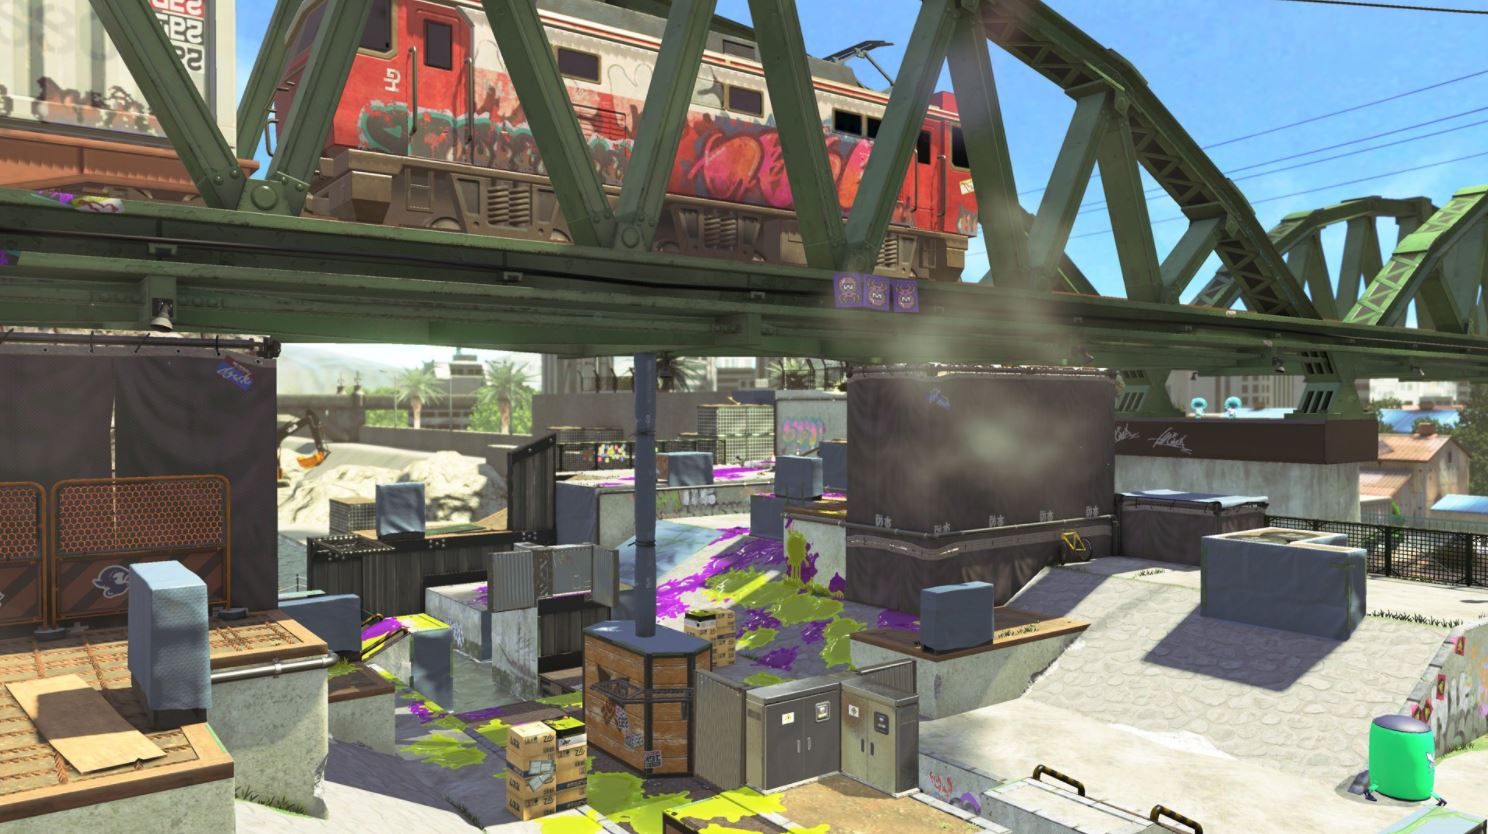 New Splatoon 2 stage coming tomorrow